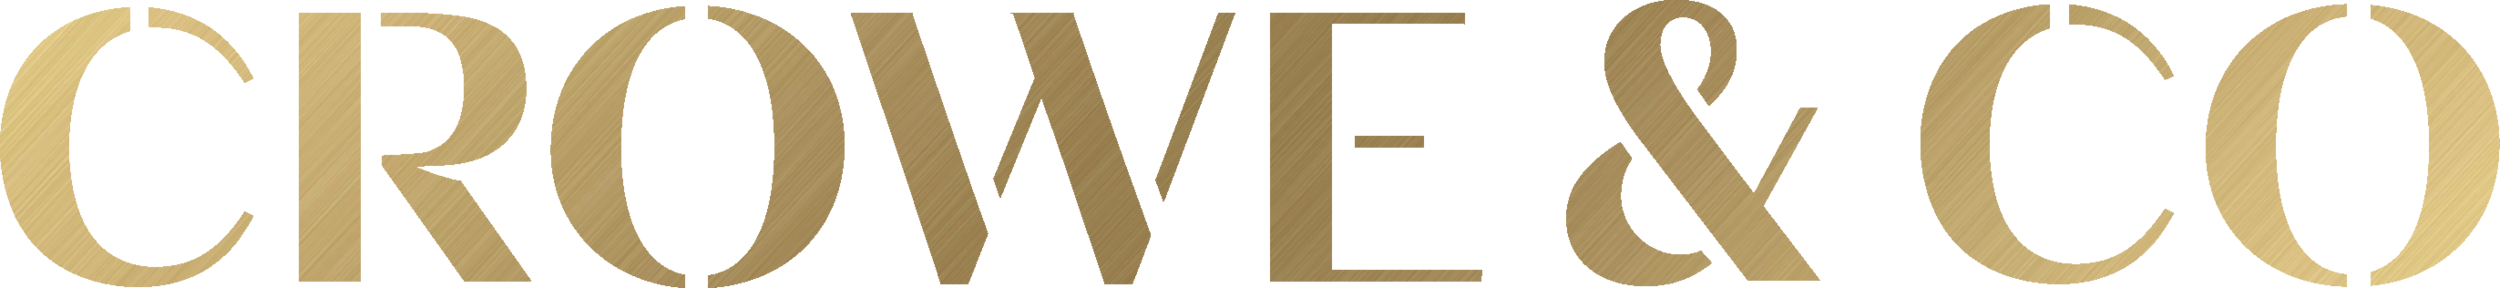 Crowe & Co_Logomark_GOLD.png